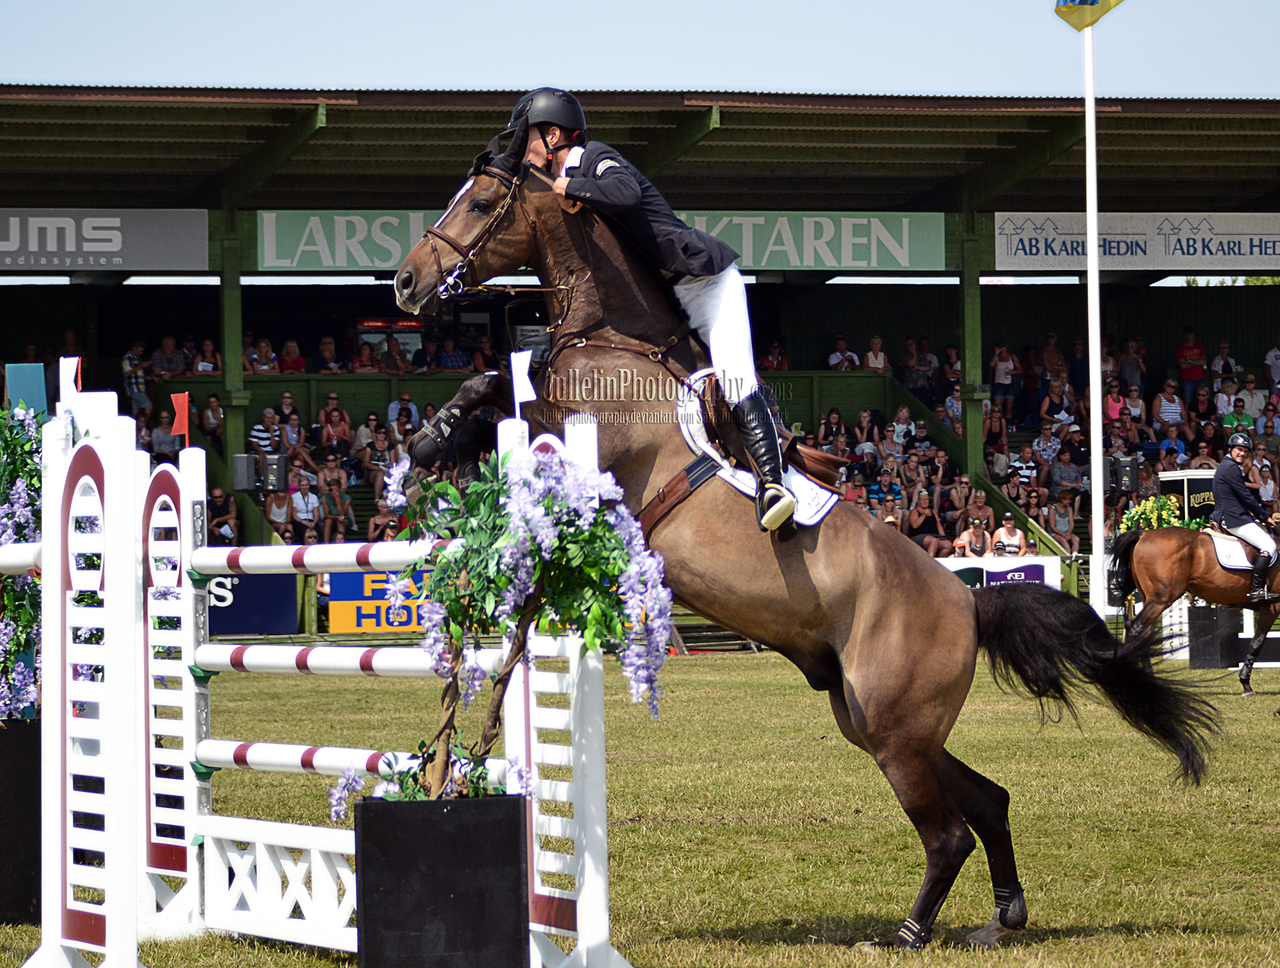 Show Jumping 45 by JullelinPhotography on DeviantArt